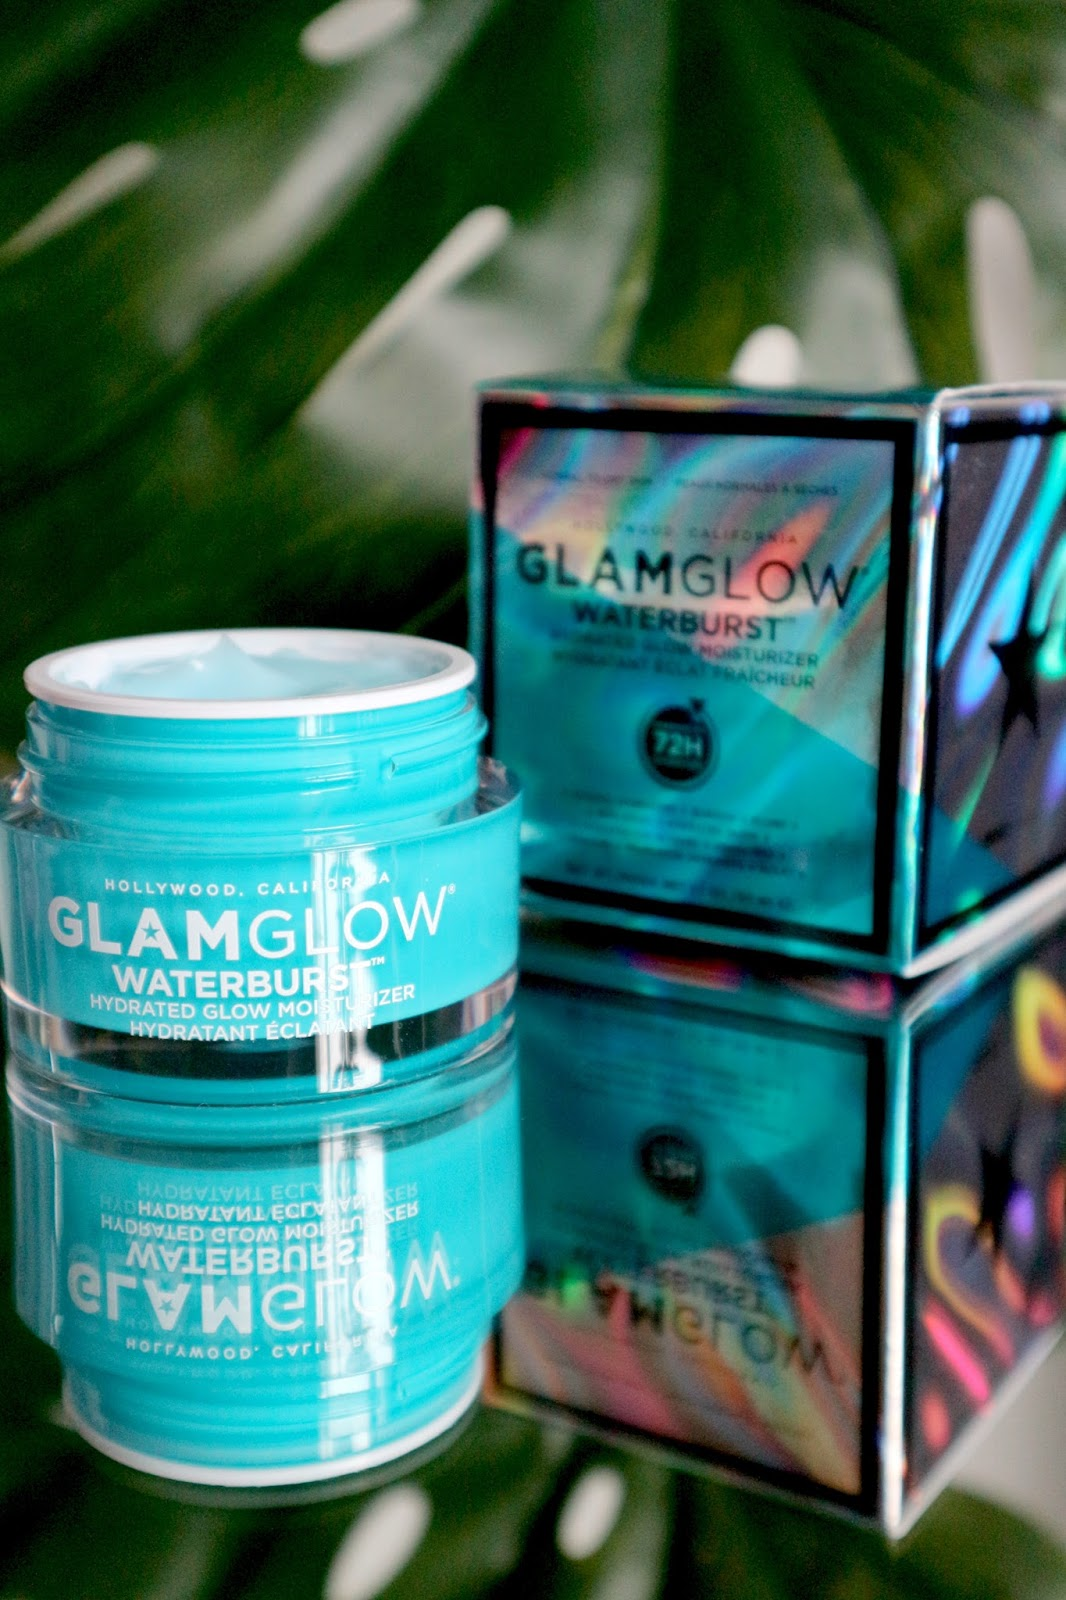 GLAMGLOW WATERBURST review